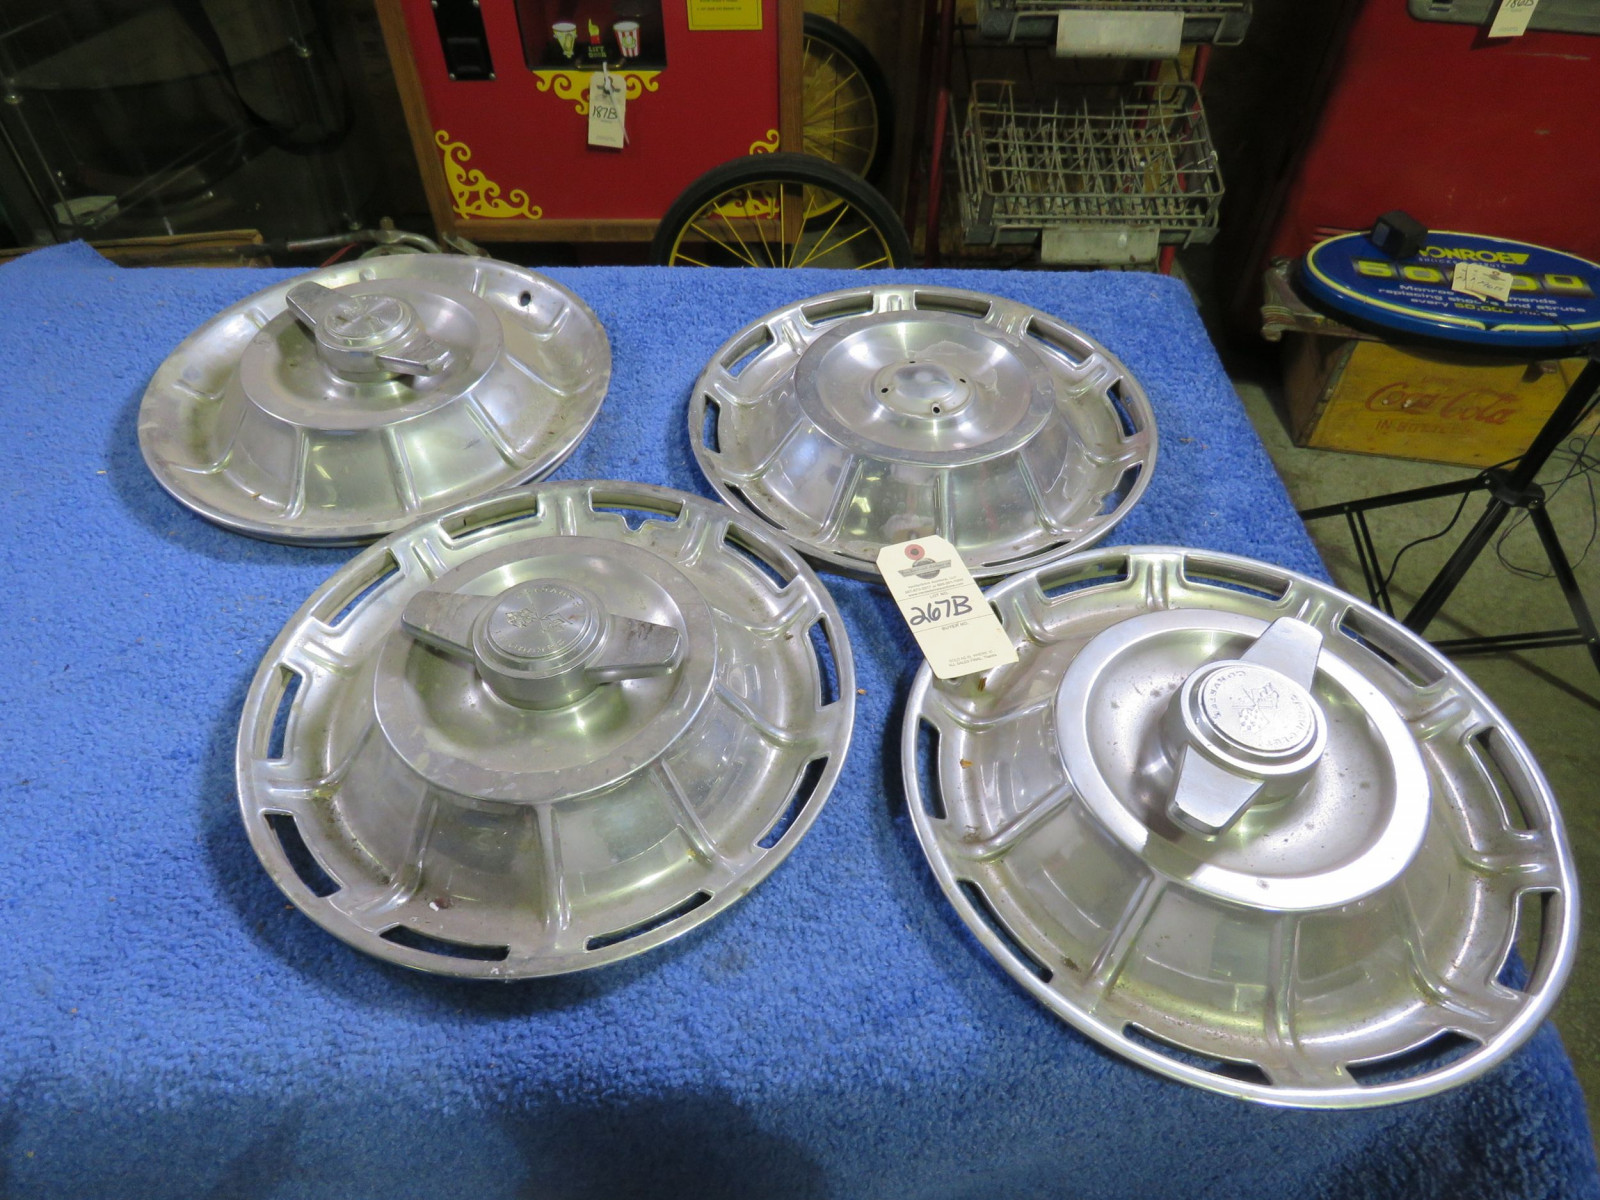 1957 Chevrolet 4 Hubcaps Used - Image 1